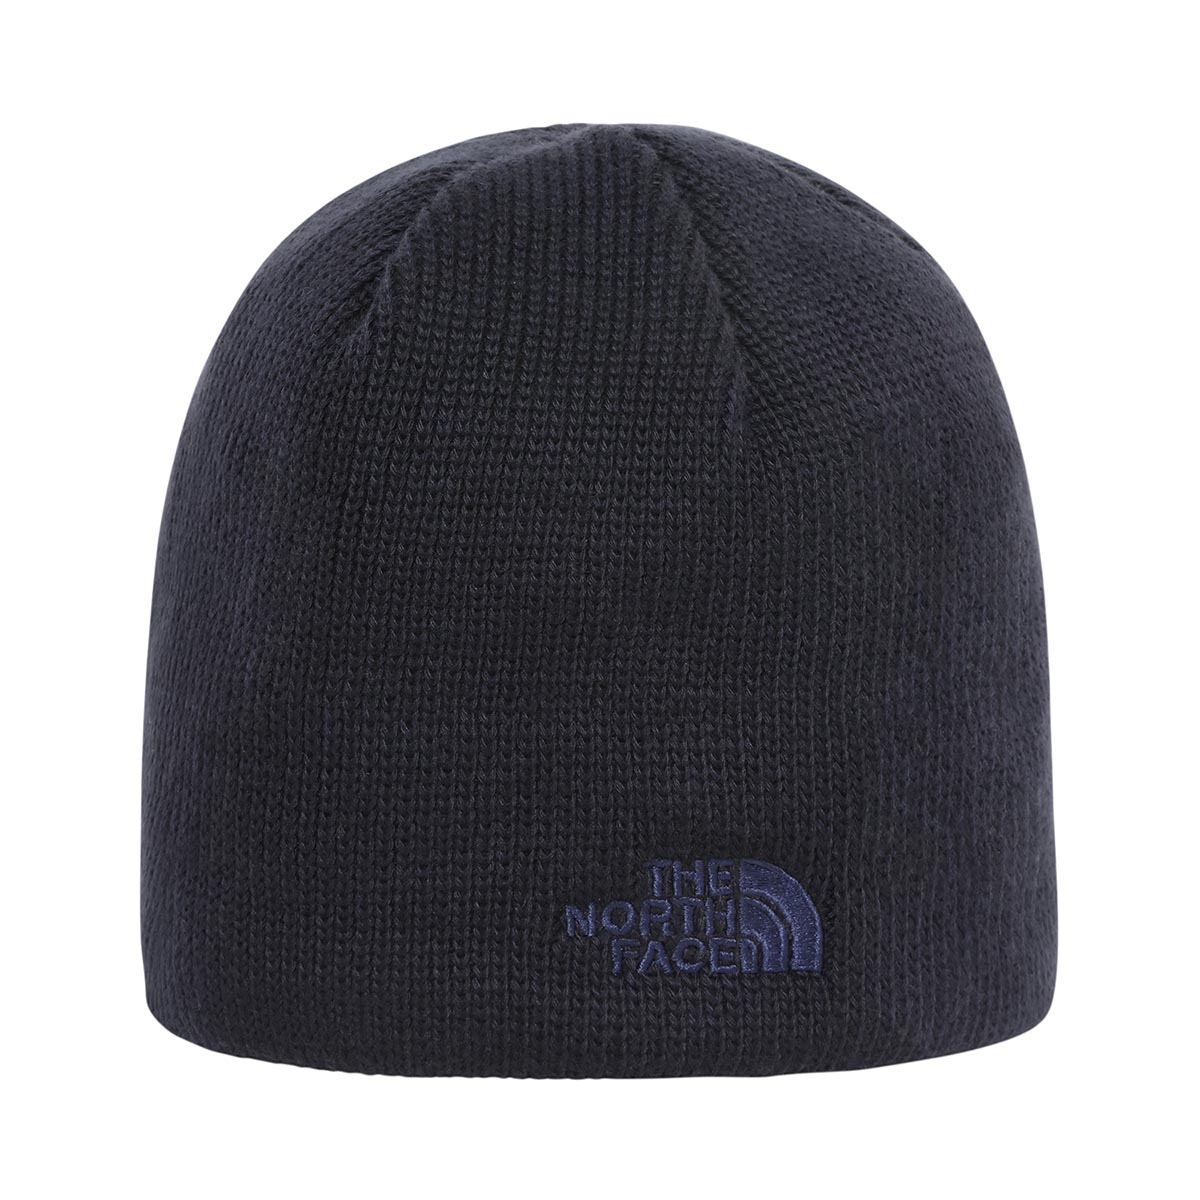 THE NORTH FACE - BONES RECYCLED BEANIE